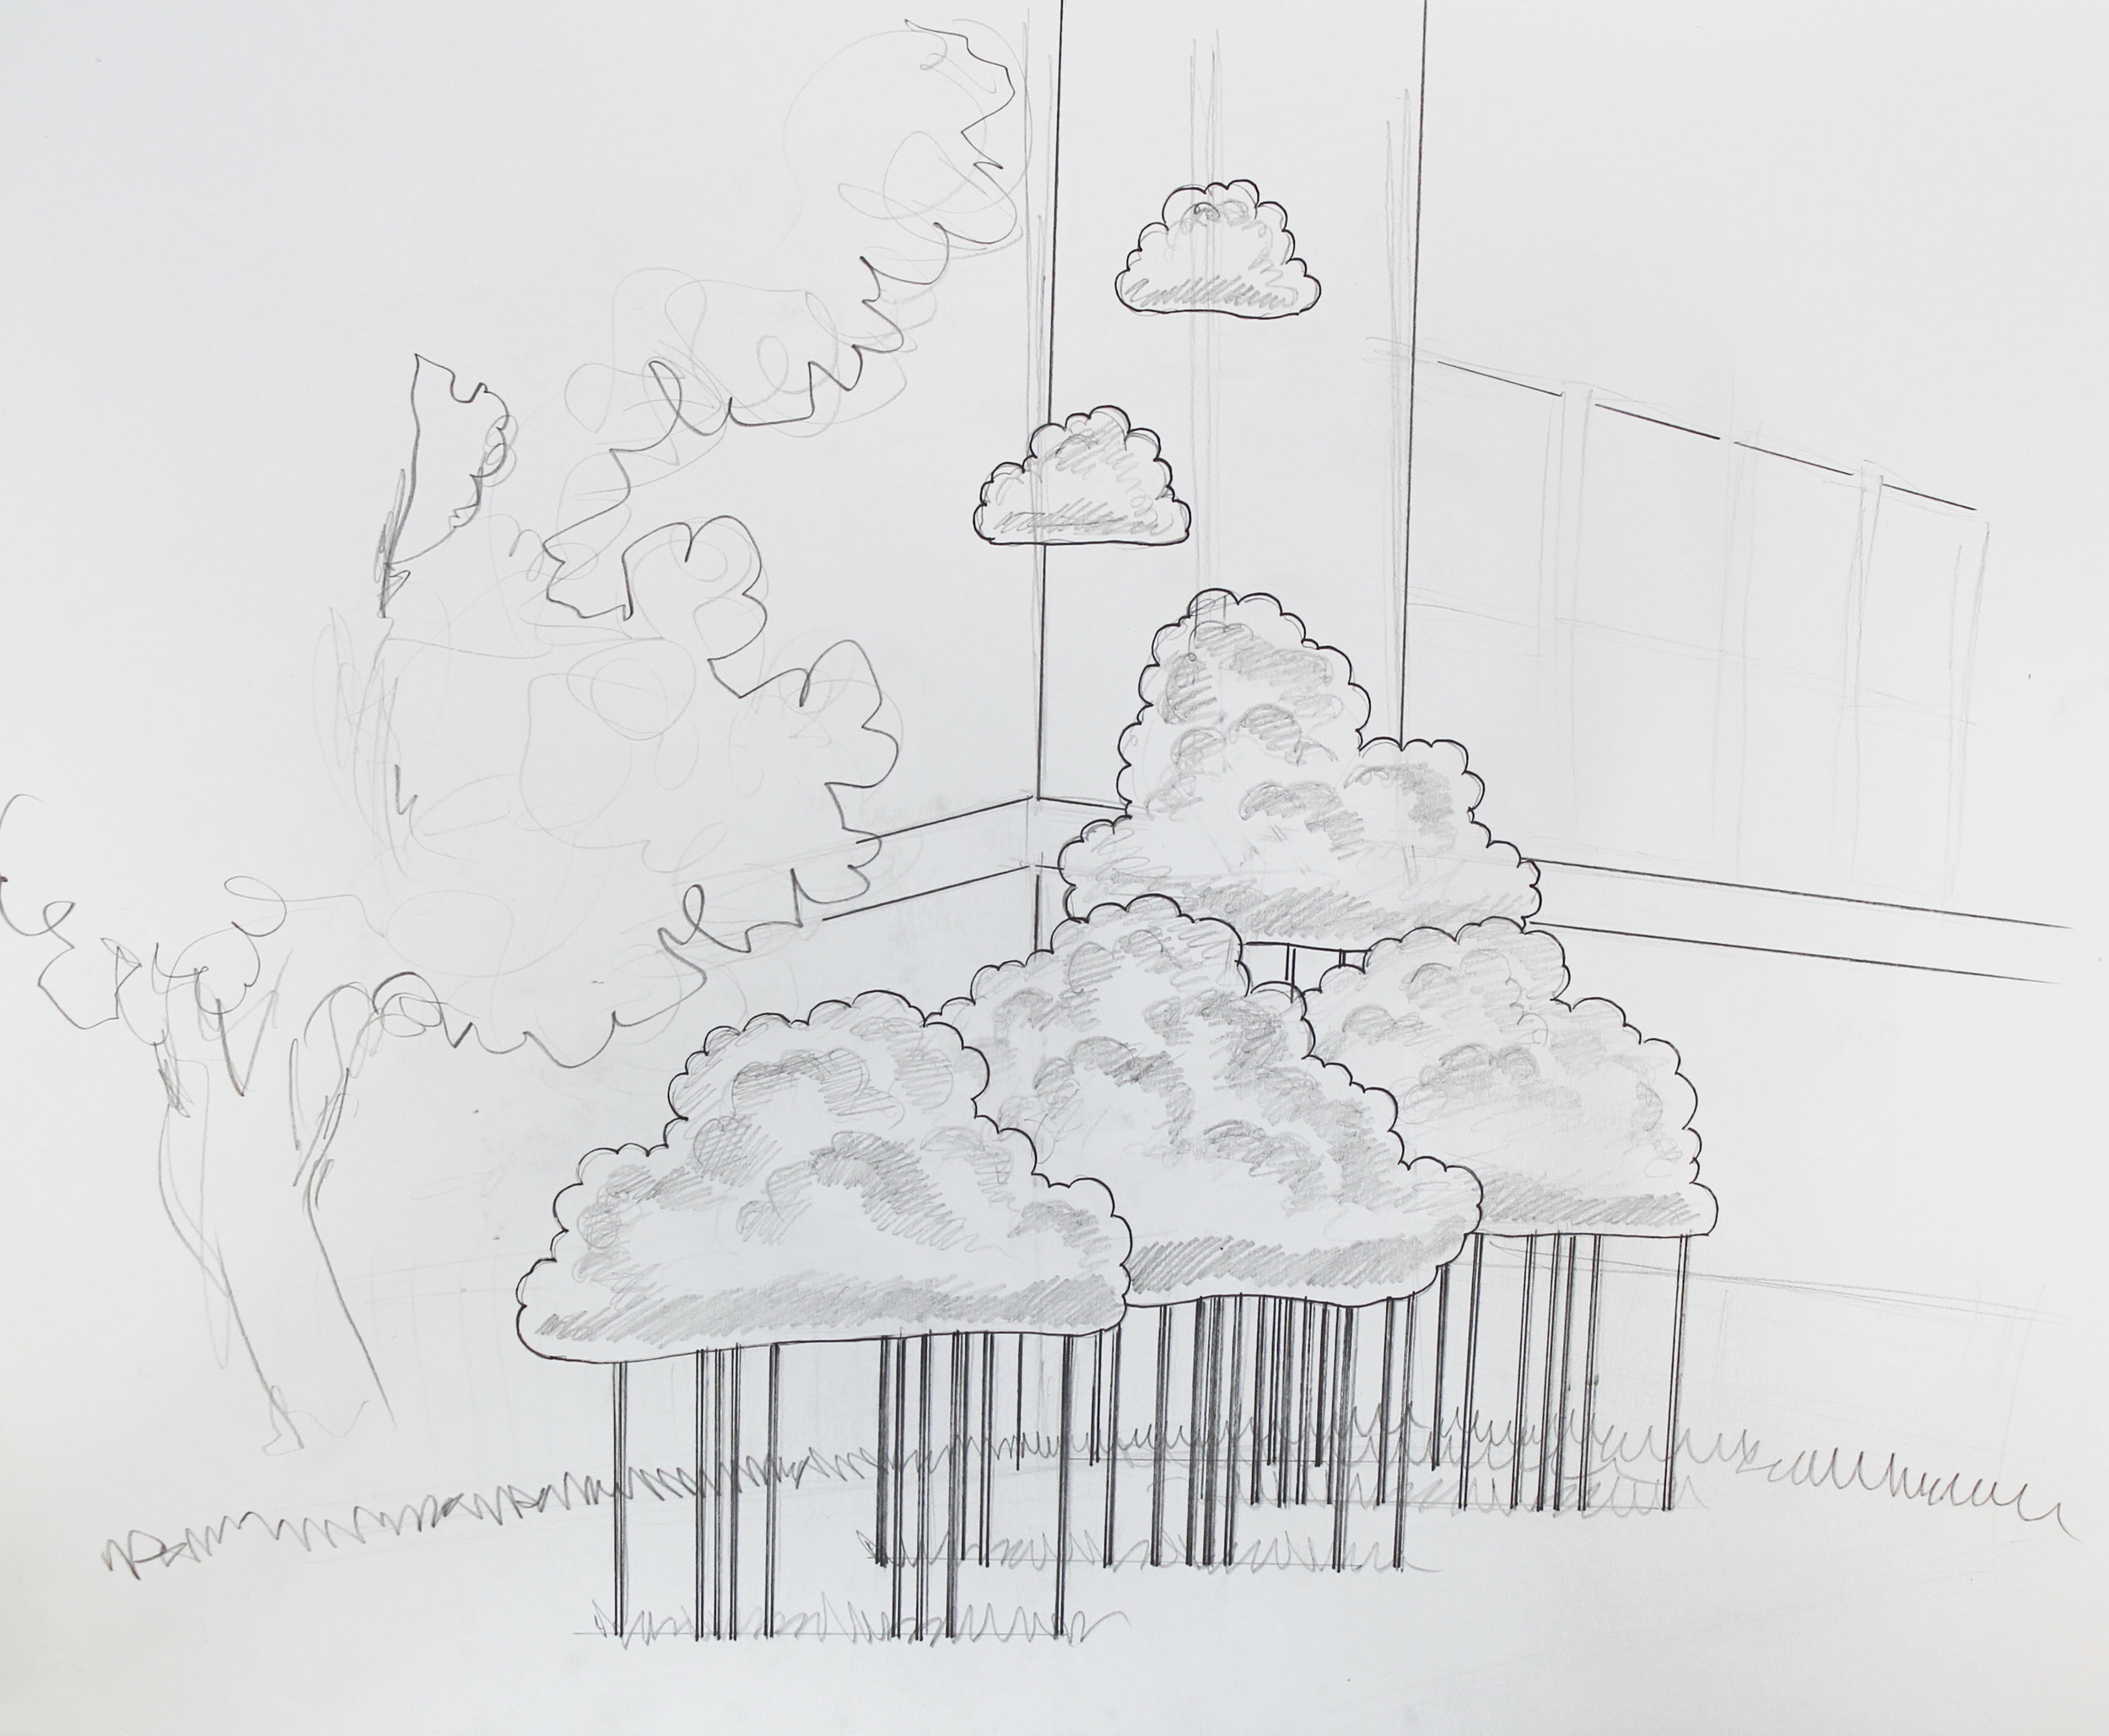 Revised sketch when combined with student idea.